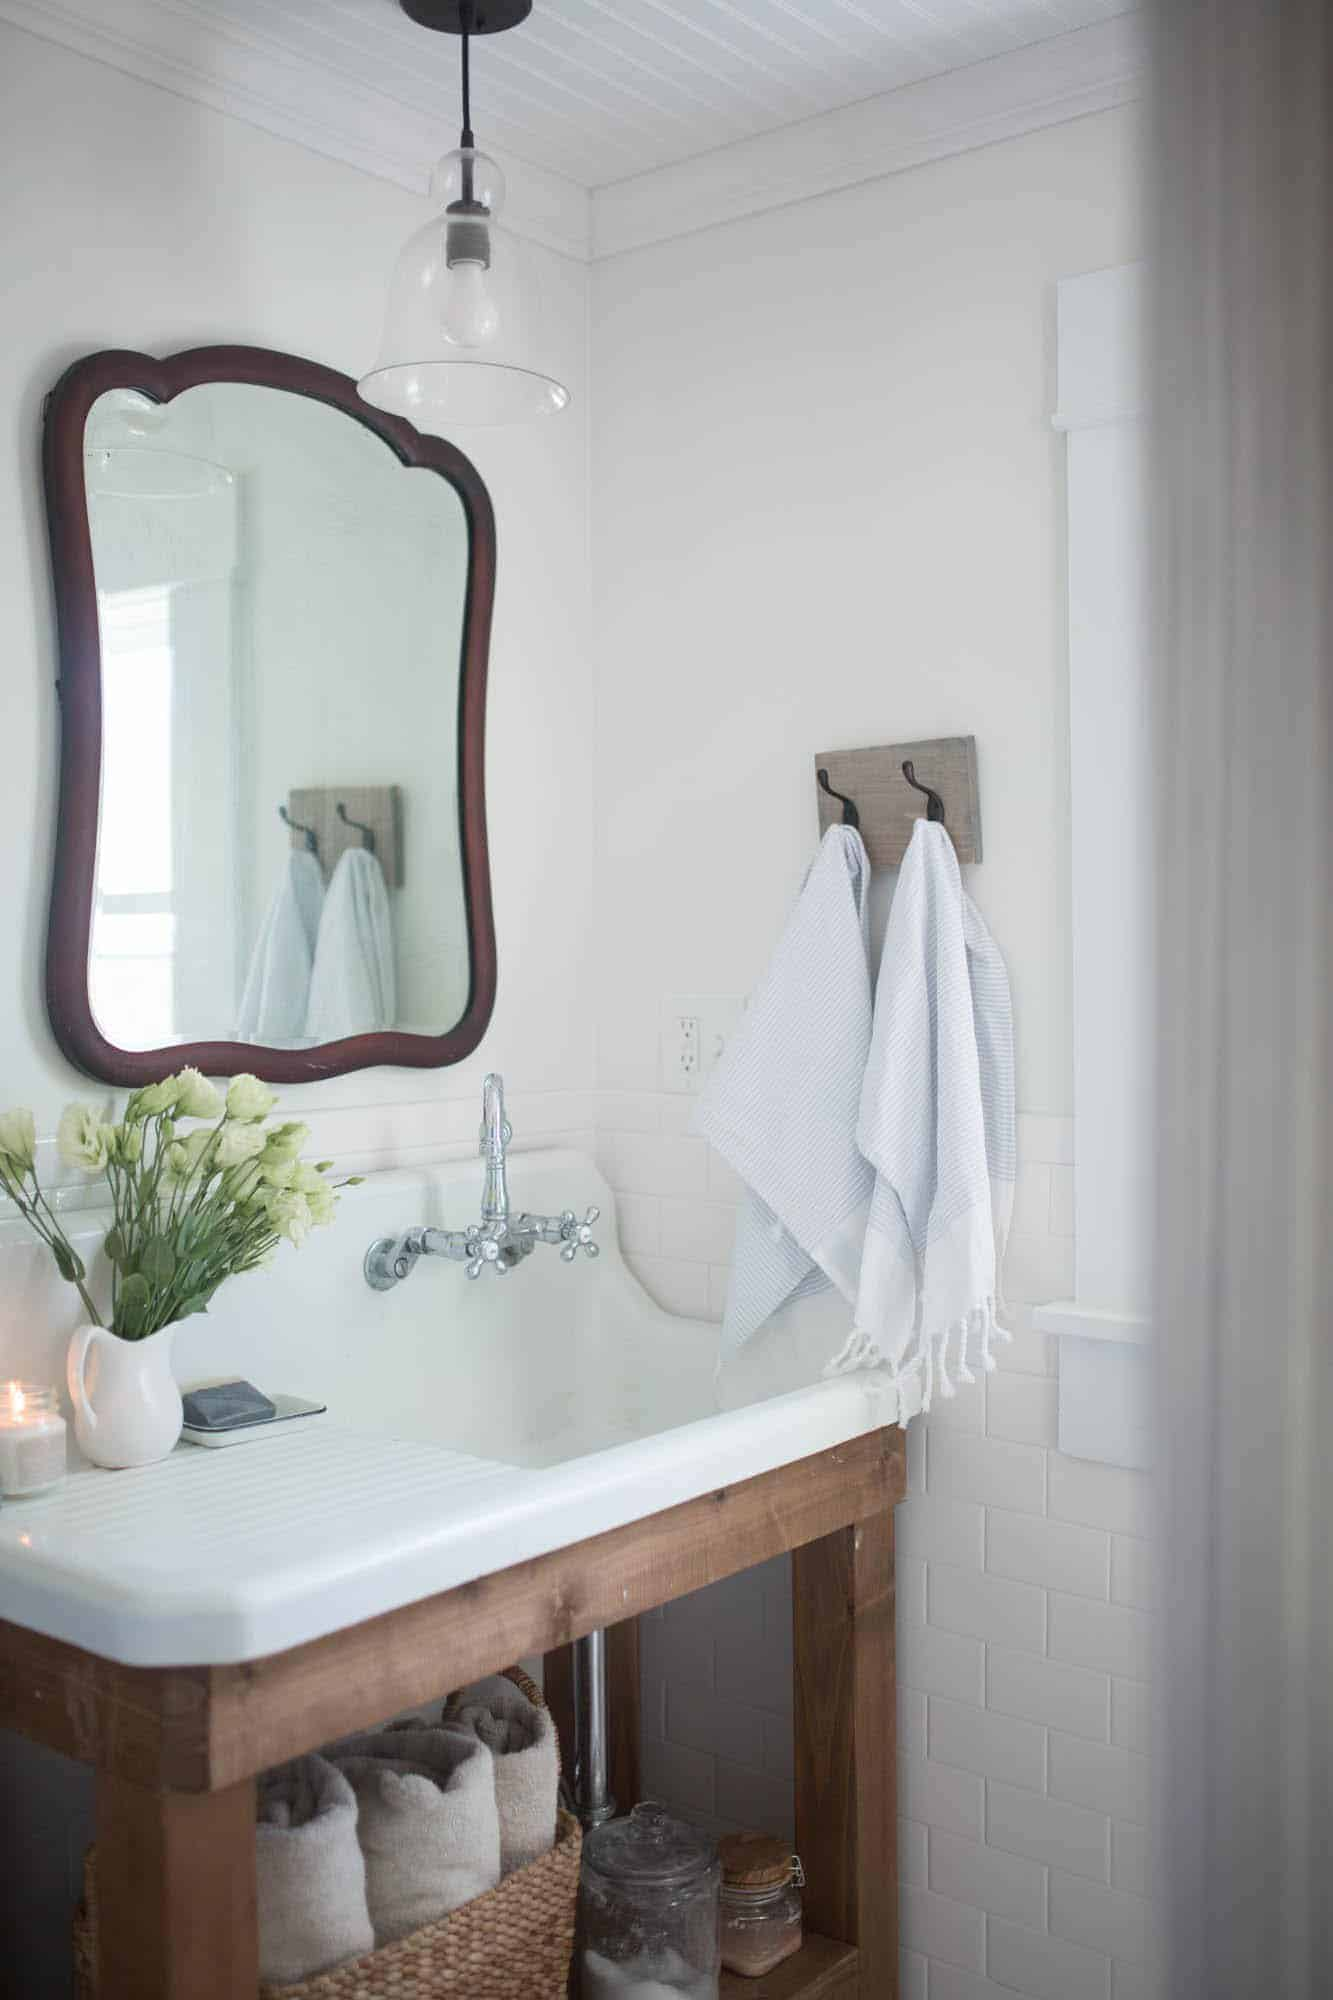 Fullsize Of Farmhouse Bathroom Decor